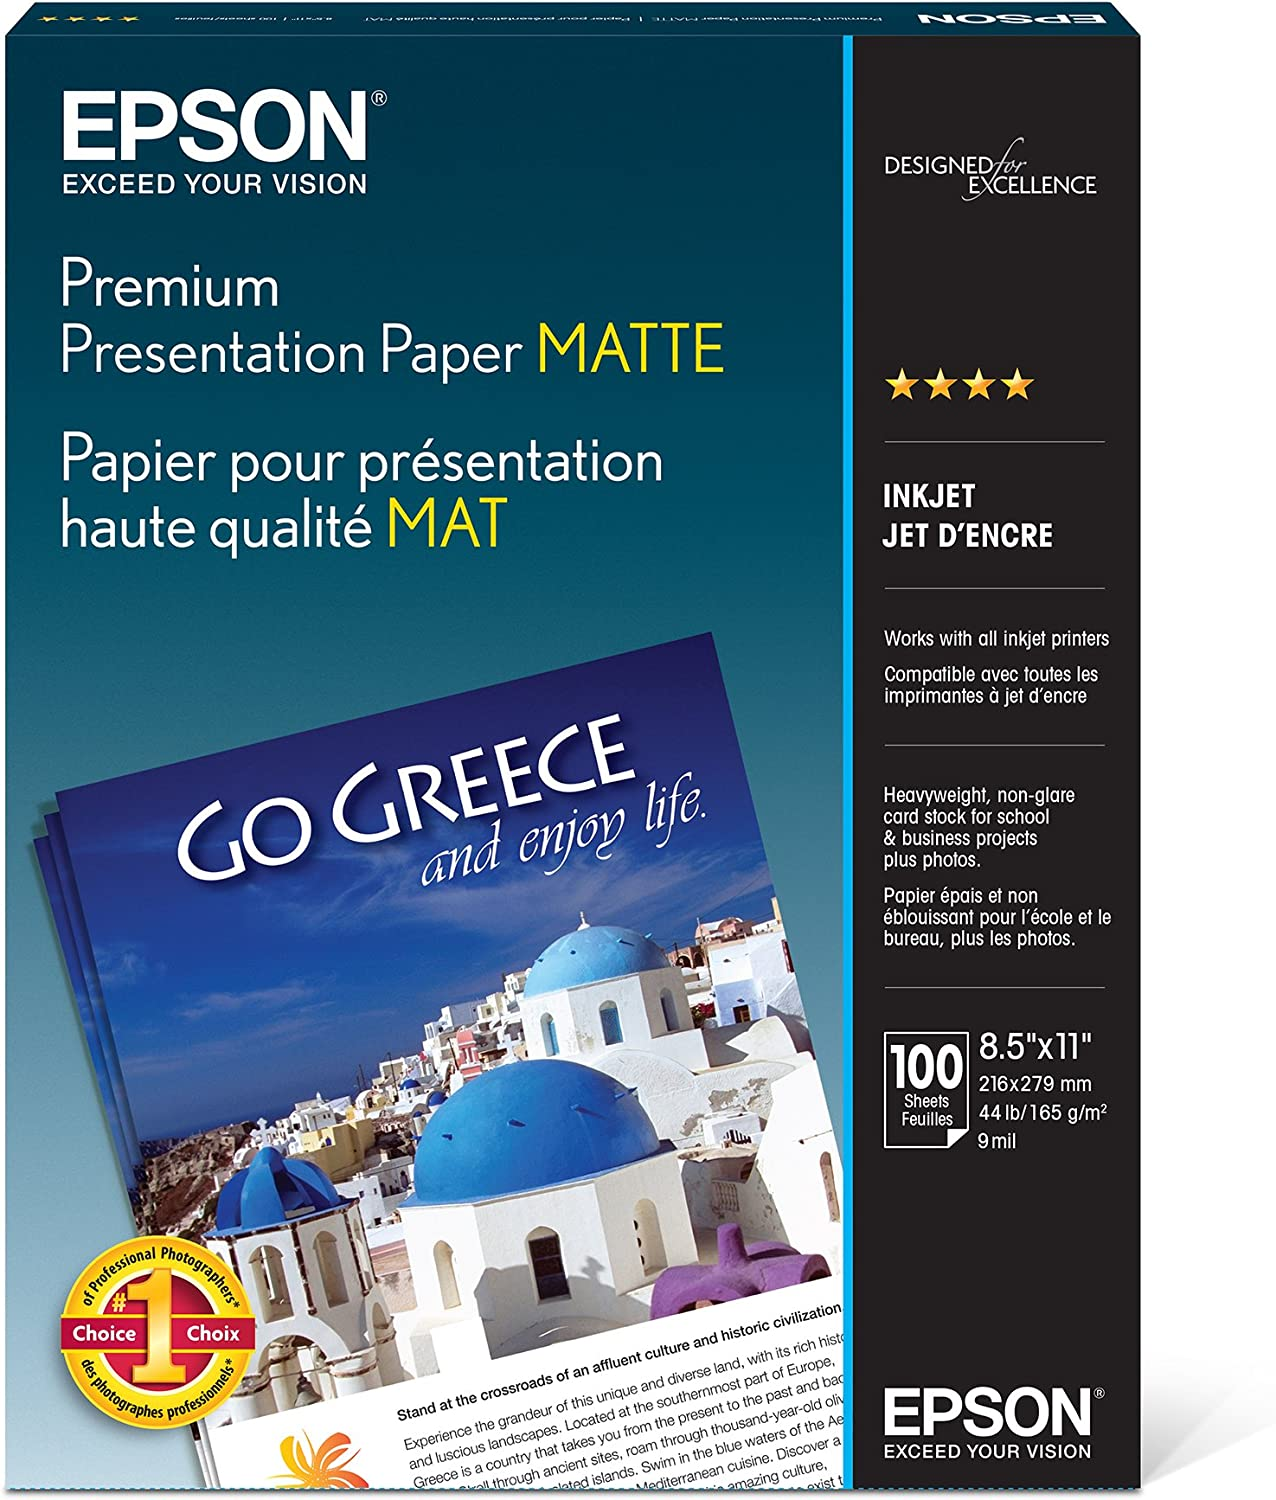 Epson Premium Presentation Paper MATTE 8.5x11 Inches Double sided 50 Sheets NEW